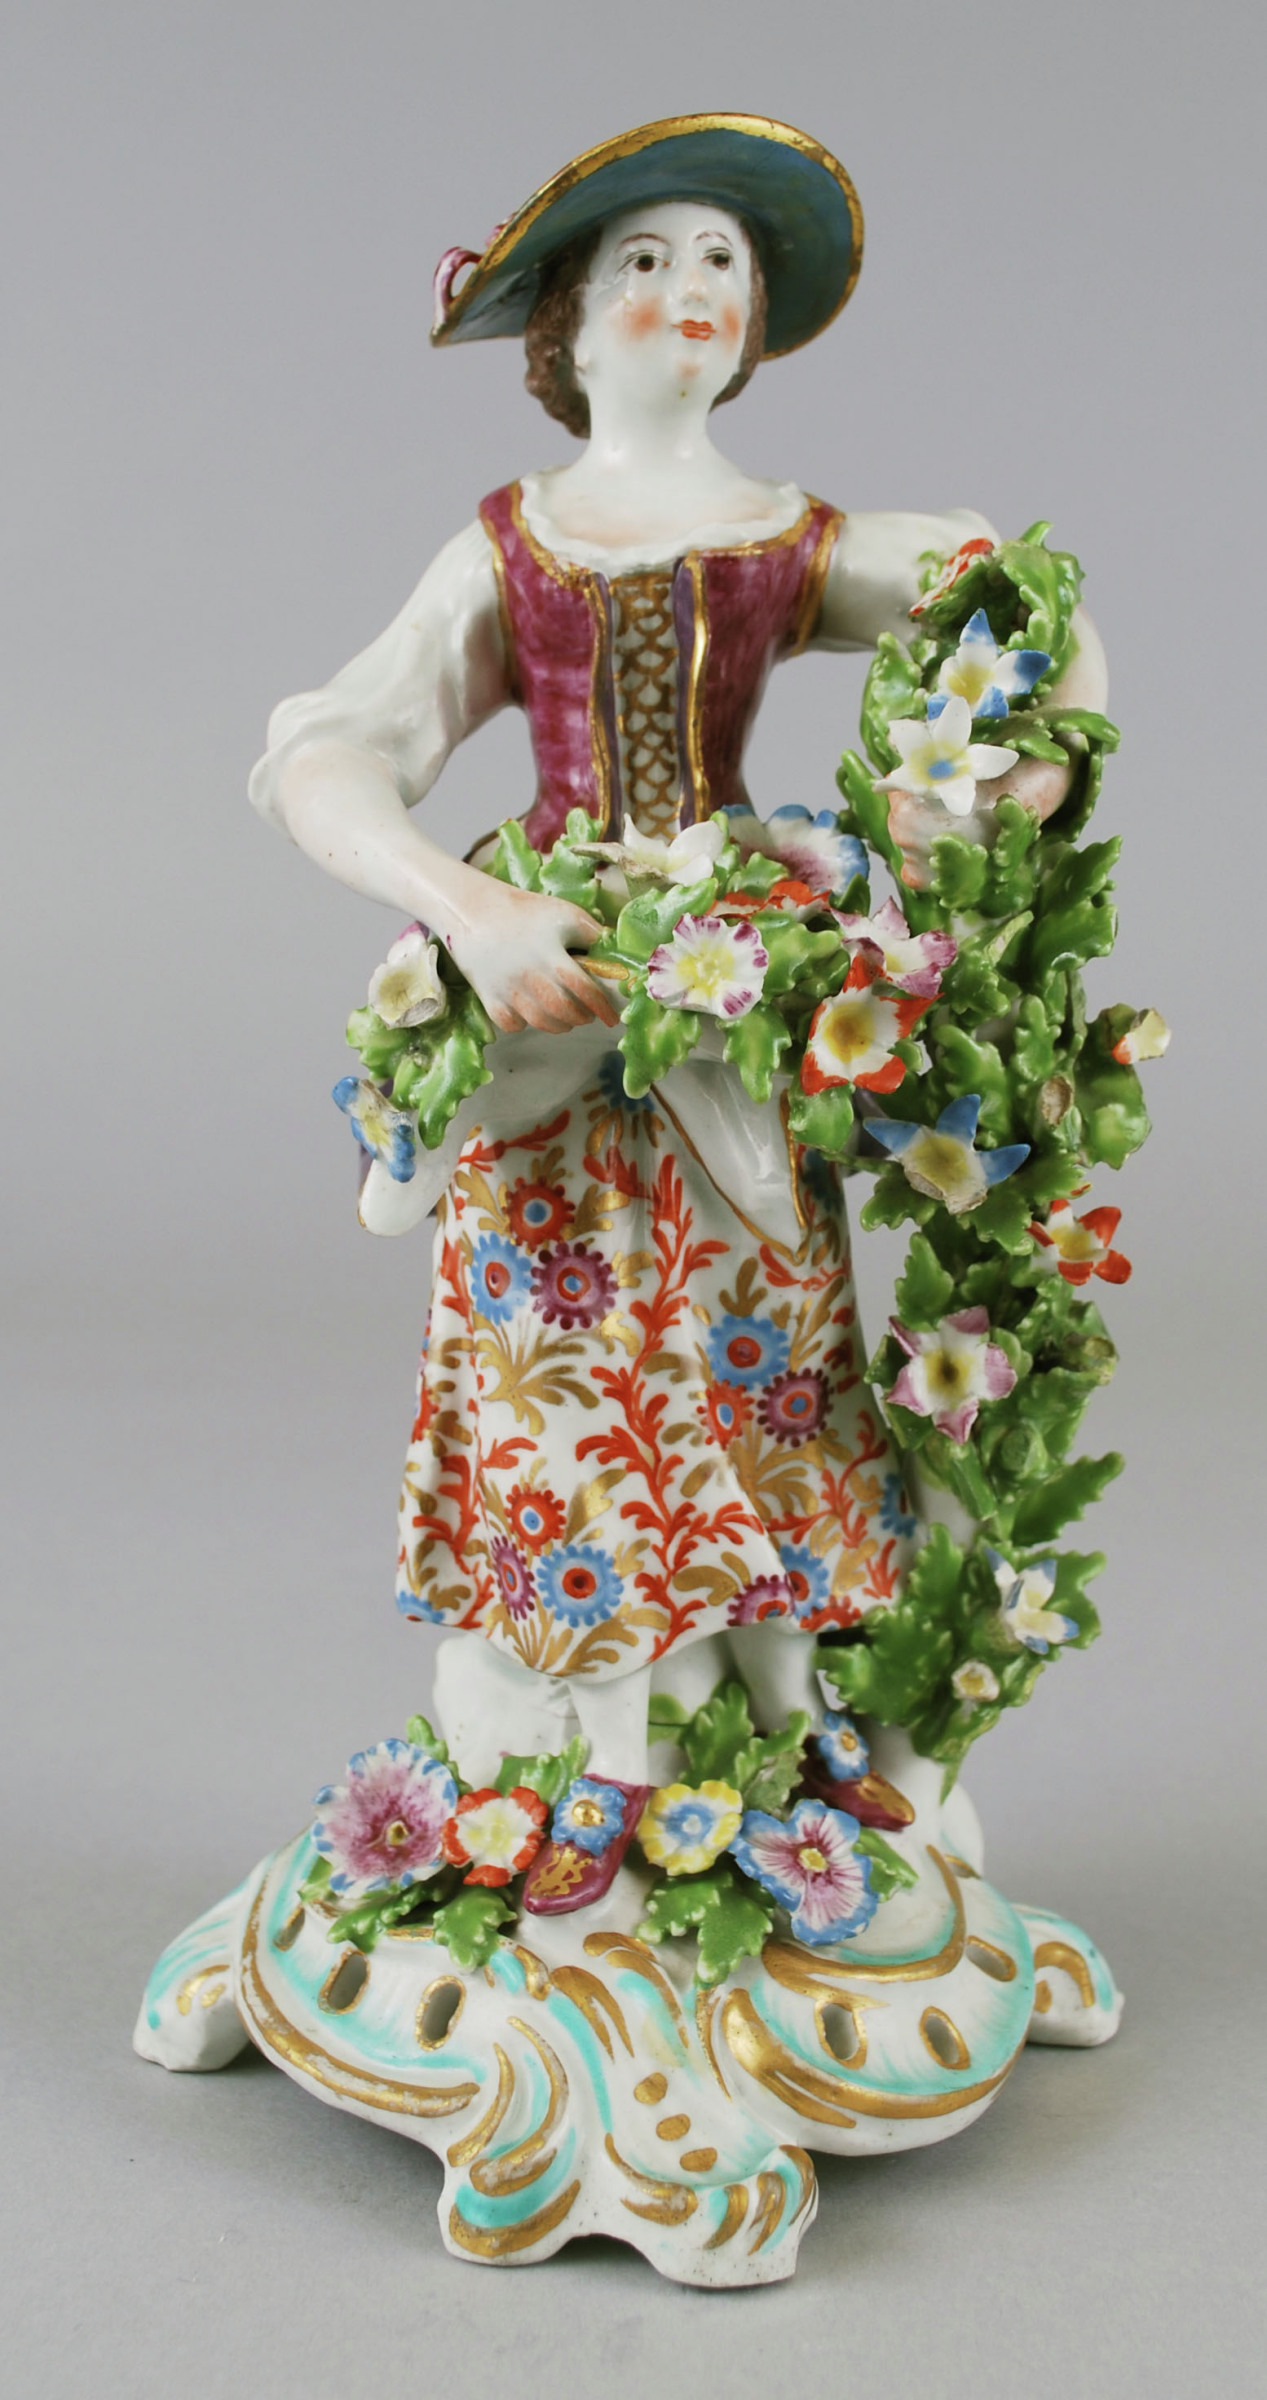 Soft-paste porcelain figure of a woman selling flowers, emblematic of spring, standing in full figure on a rococo base highlighted in gold and green, to her left a flowering branch that offers the figure support, around her waist a white apron filled with bunches of flowers, her left arm encircles the flowering branch, wearing a flowered and striped skirt with purple bustle and puce bodice tied together with gold string over a white blouse, her hat is red and blue.